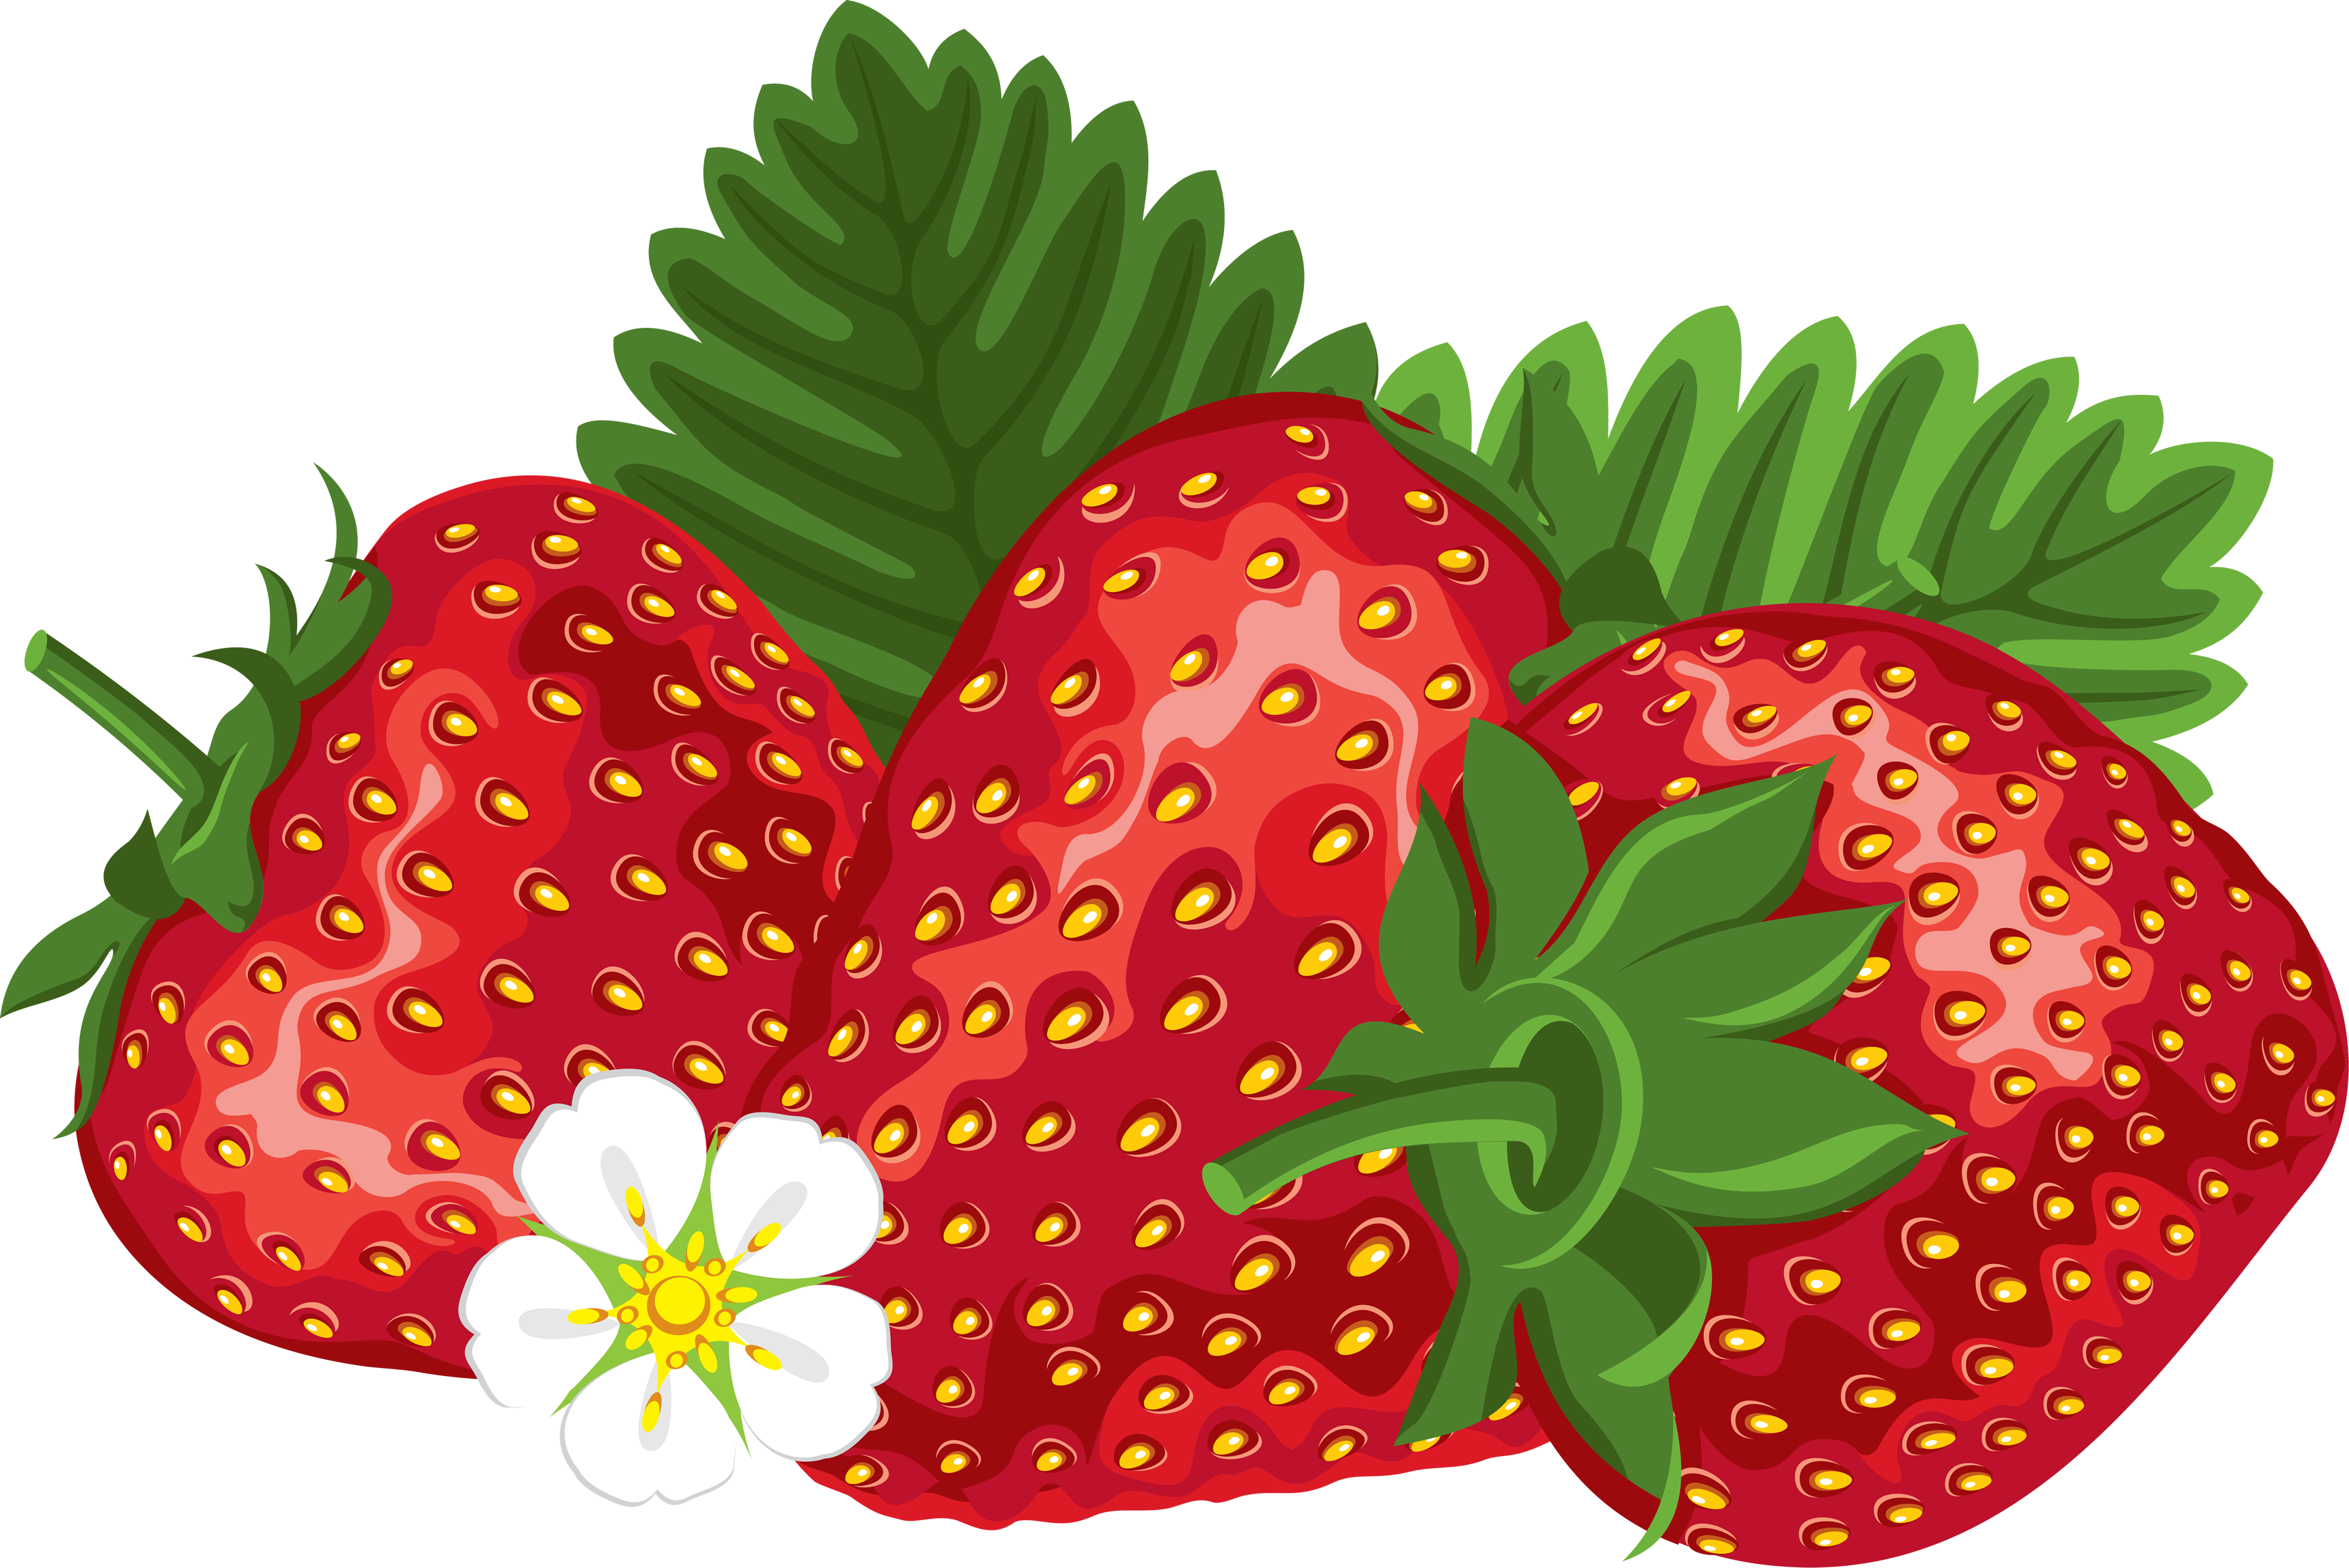 transparent library Berries clipart vector. Strawberry png image purepng